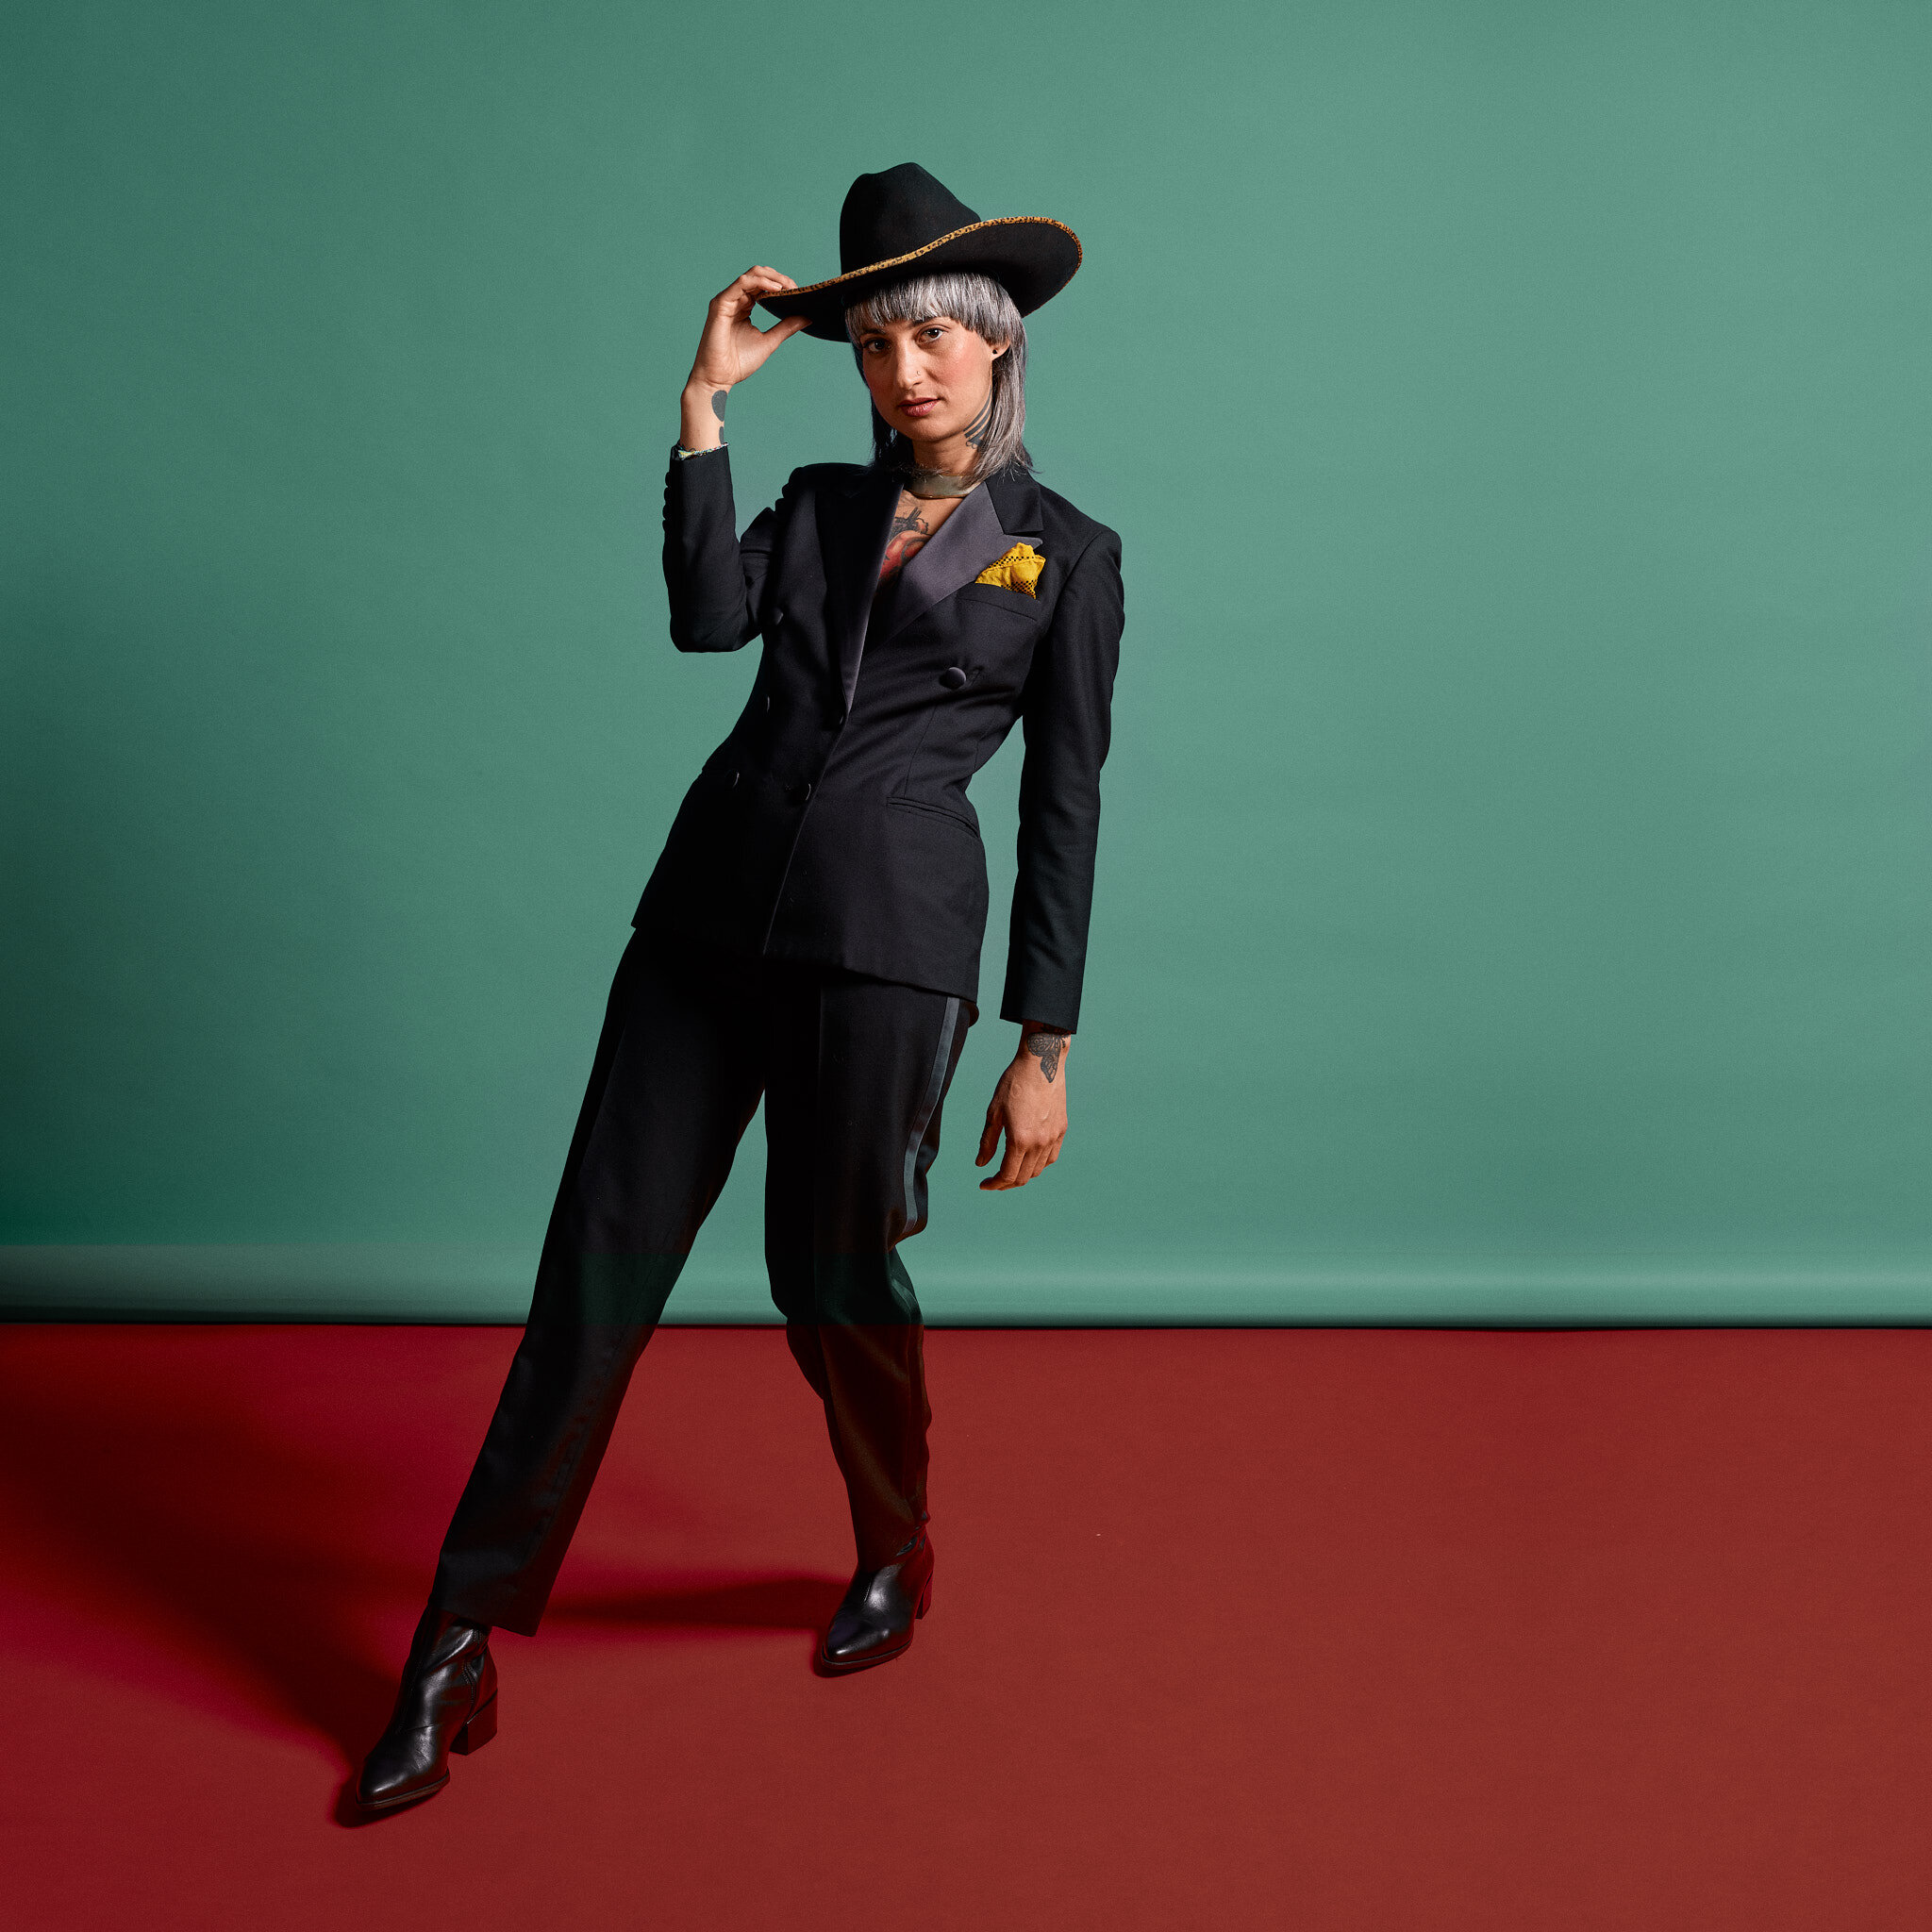 Luz EP pic official Cowboy hat and suit.jpg